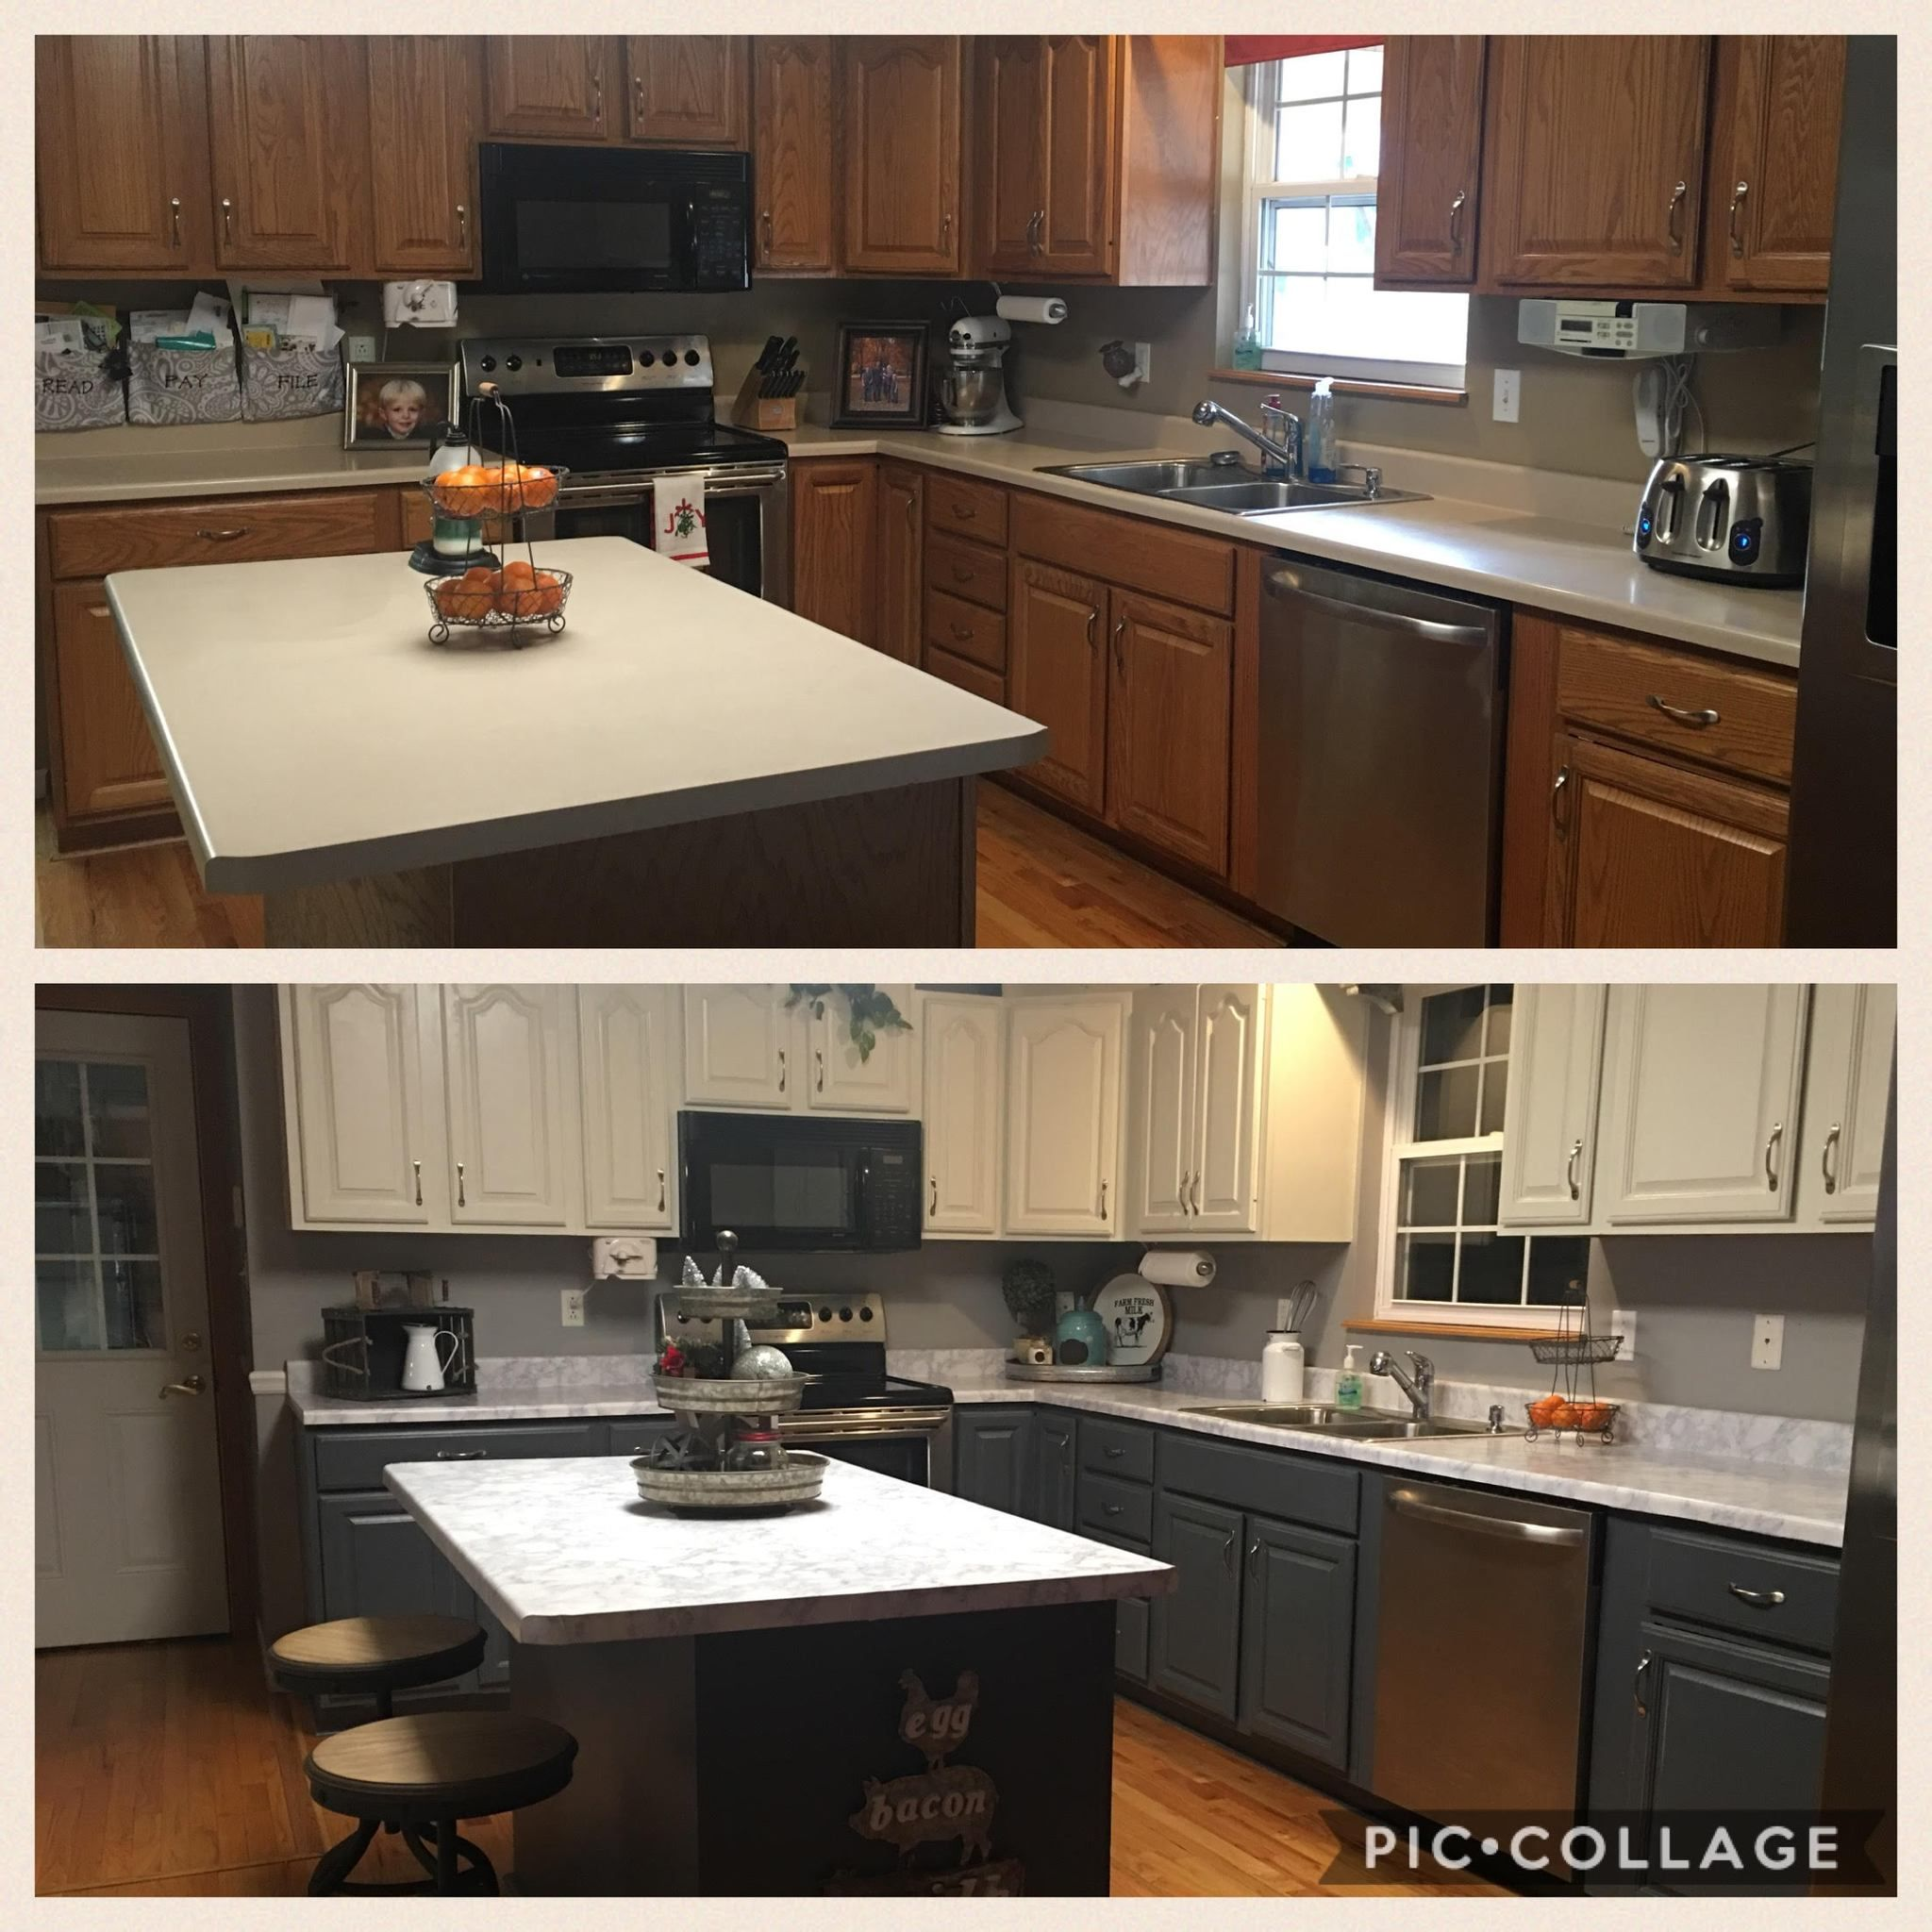 Kitchen Cabinet Makeover Customer Submission Kitchen Cabinets Kitchen Cabinets Makeover Painting Kitchen Cabinets